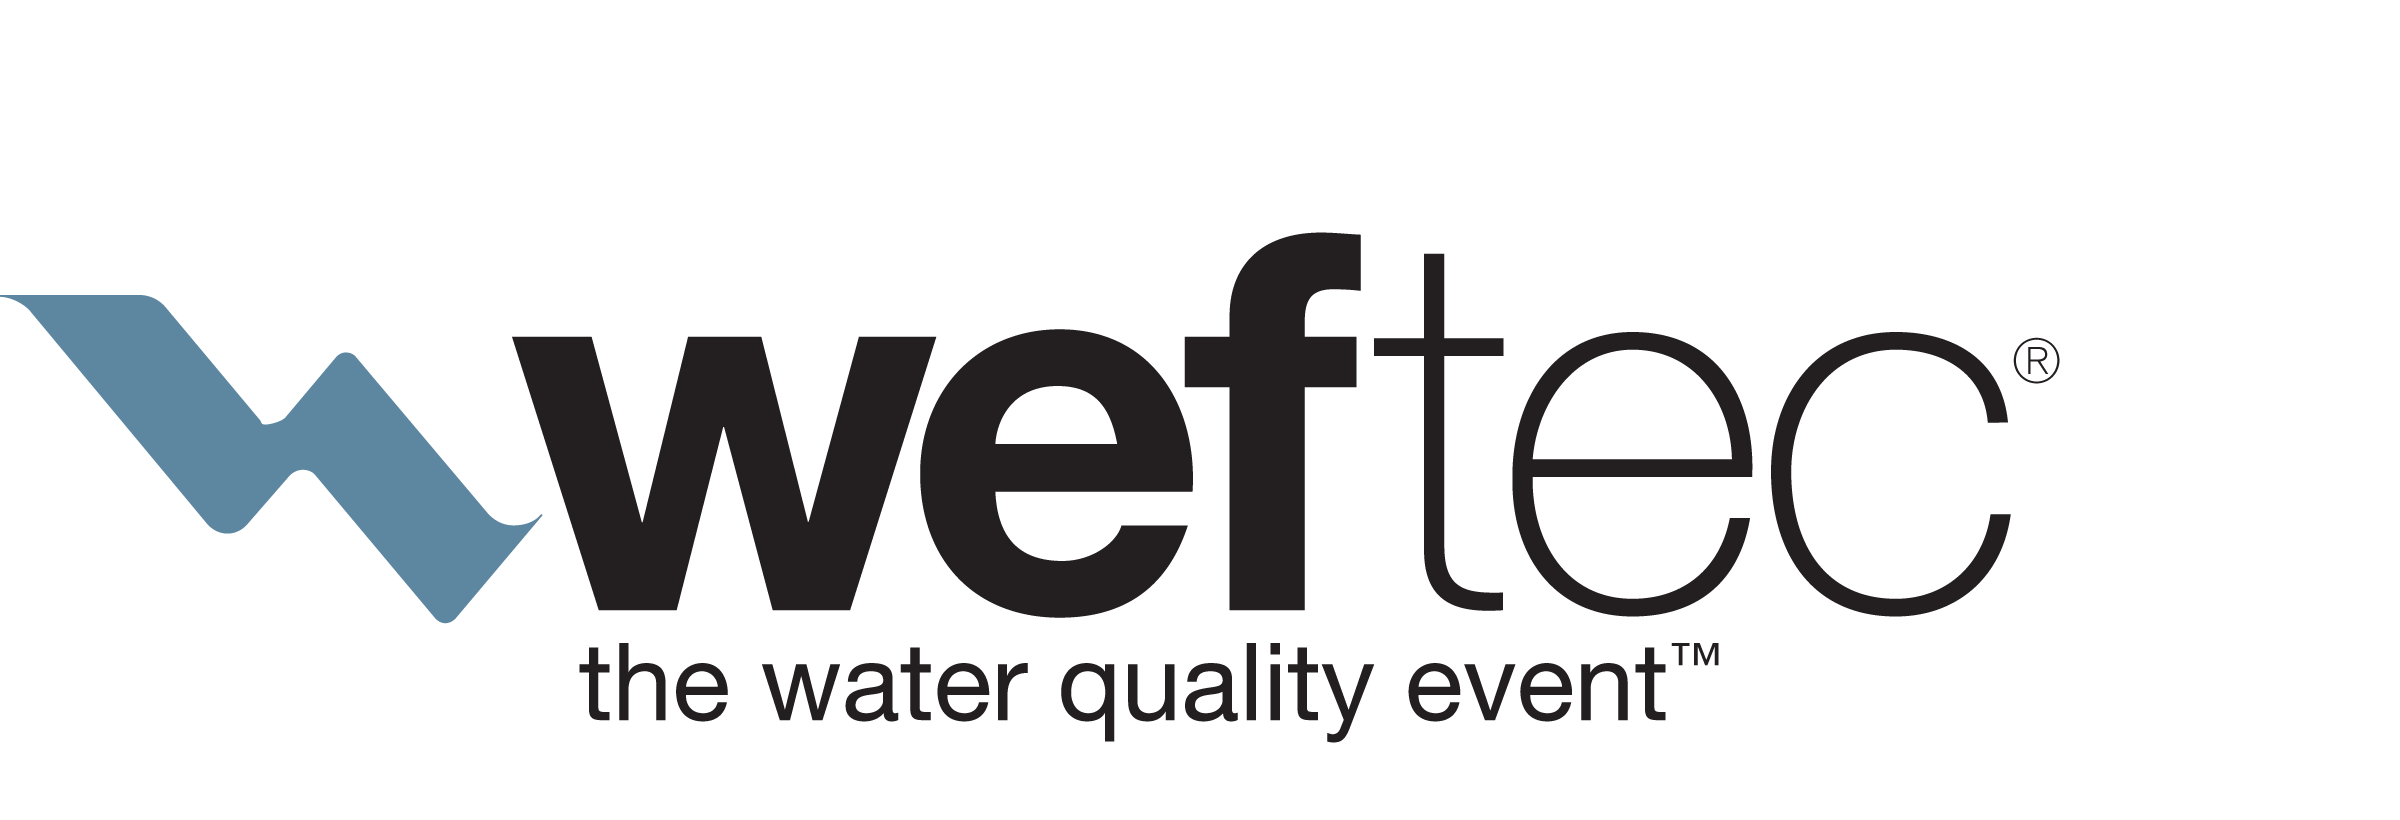 WEFTEC 2020 i New Orleans!